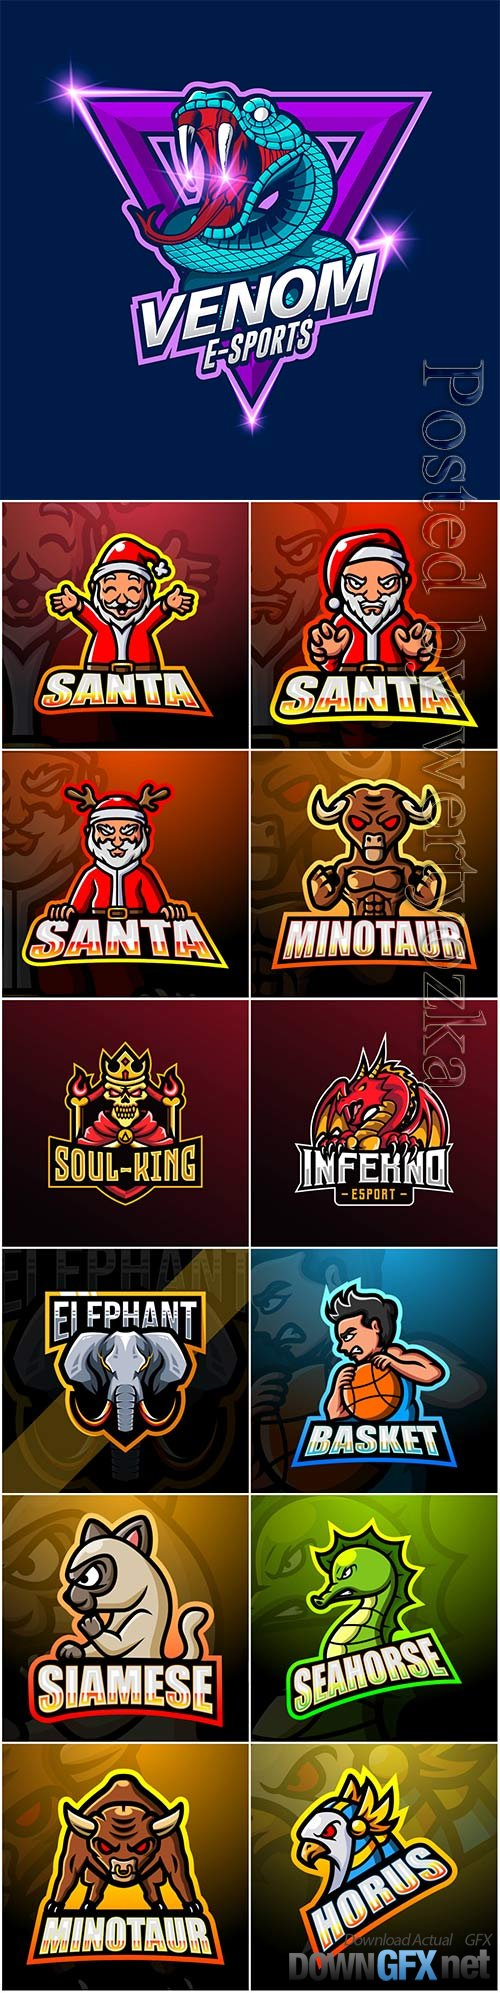 Mascot esport logo design premium vector vol 42